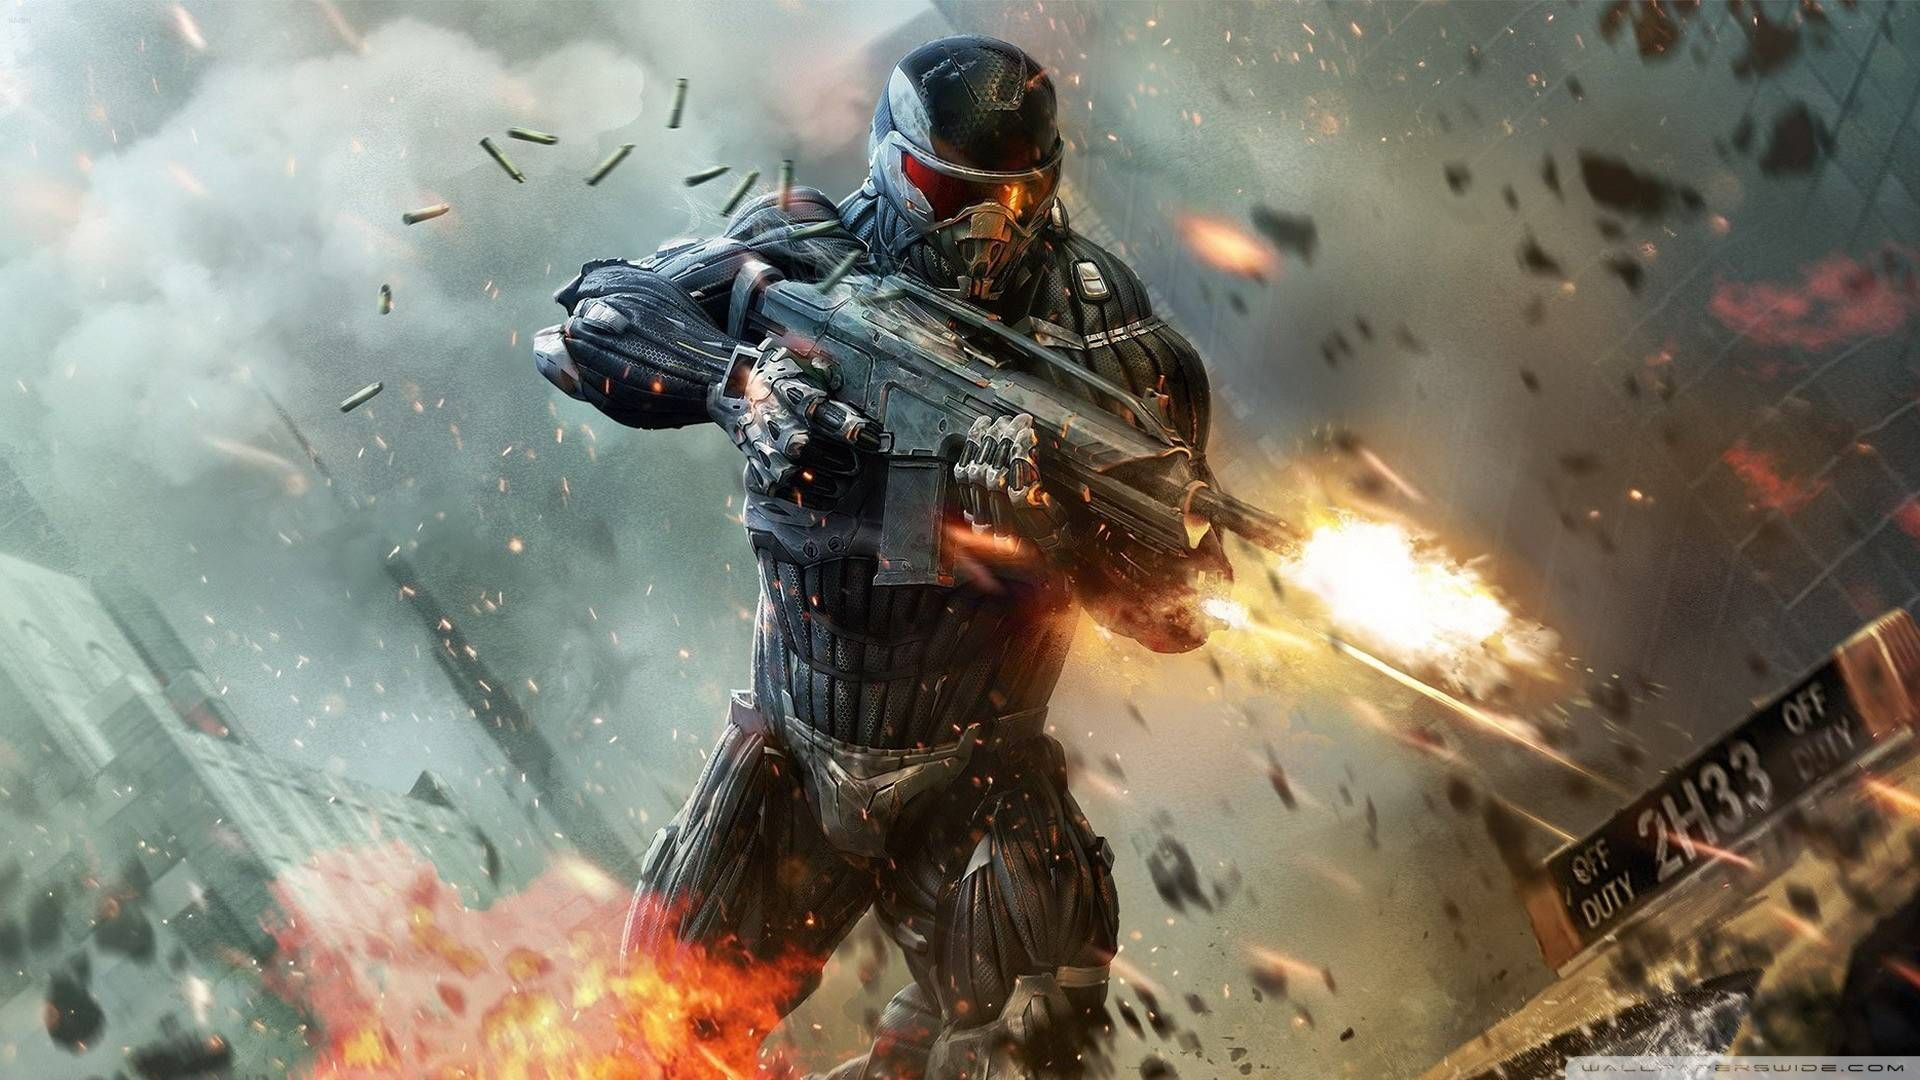 hd wallpapers widescreen 1080p 3d | view full size | more crysis 2